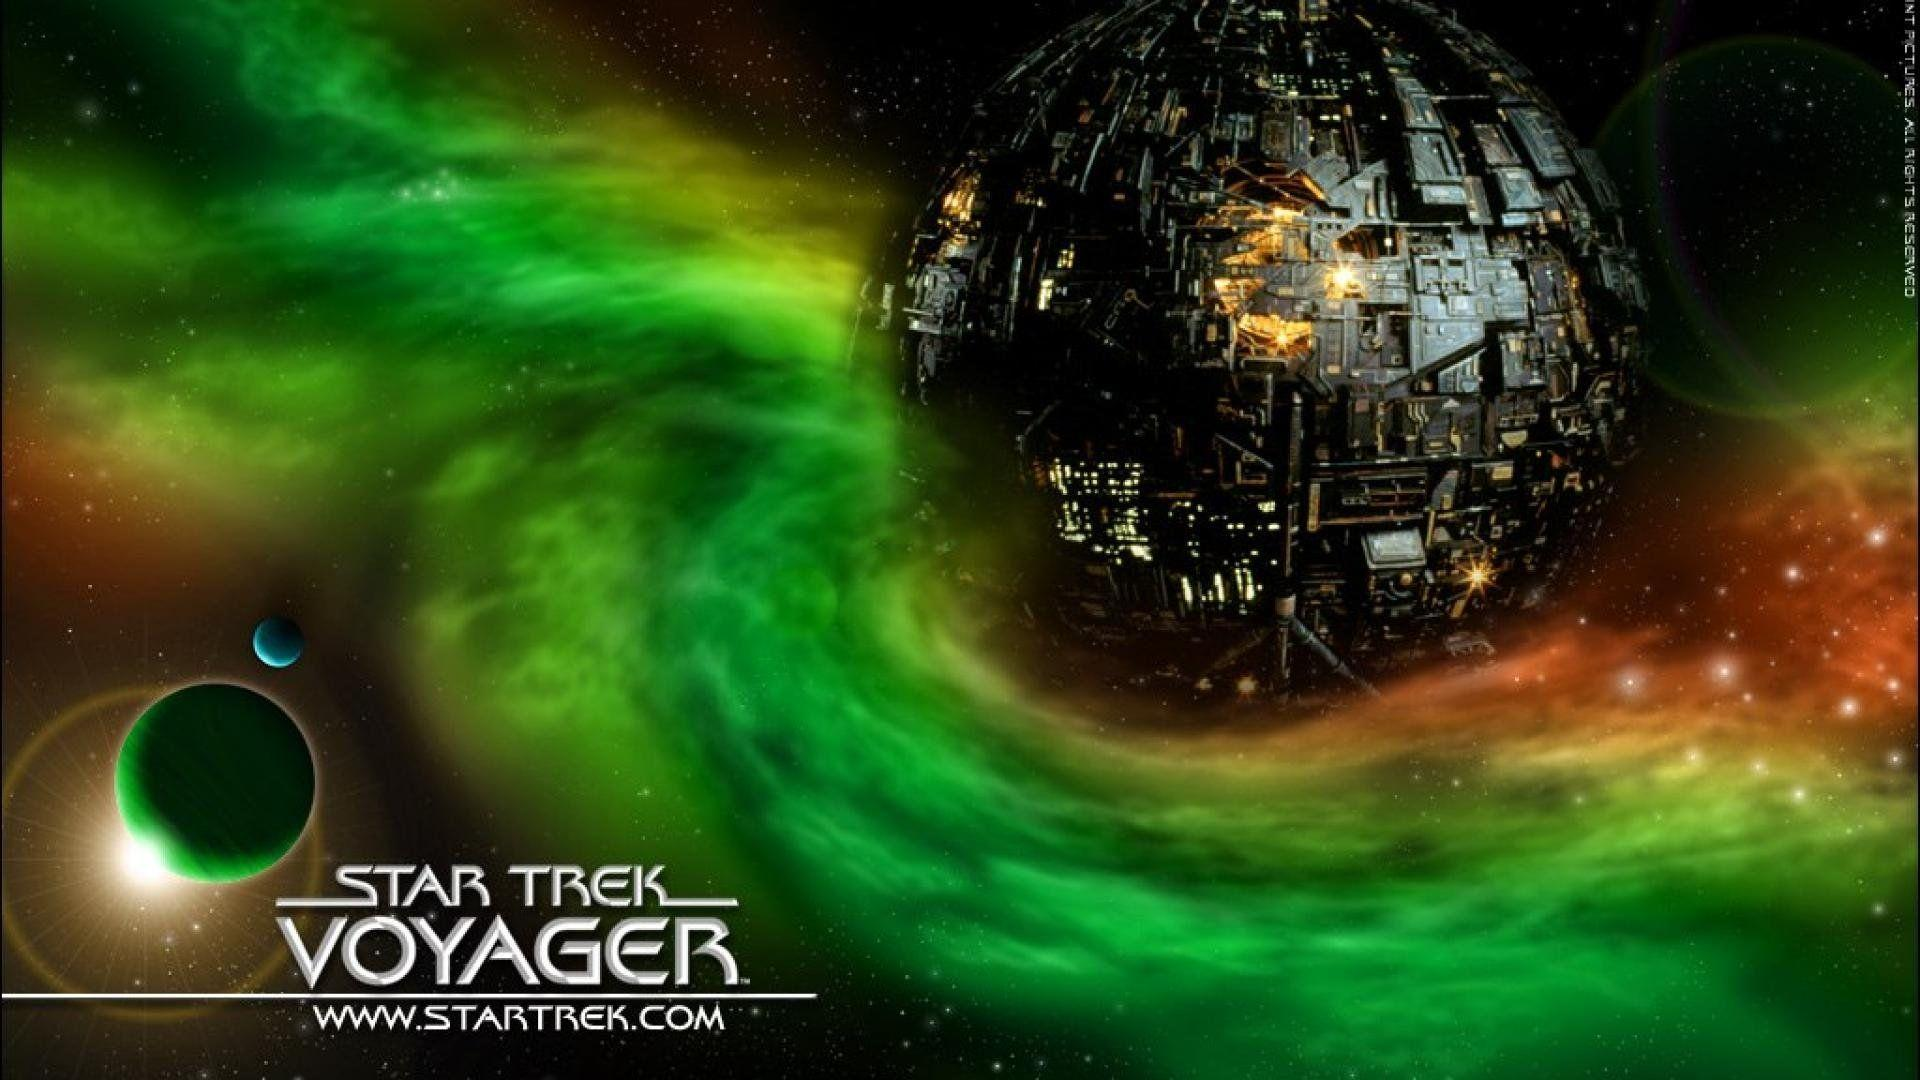 Star Trek Voyager Wallpapers 863854